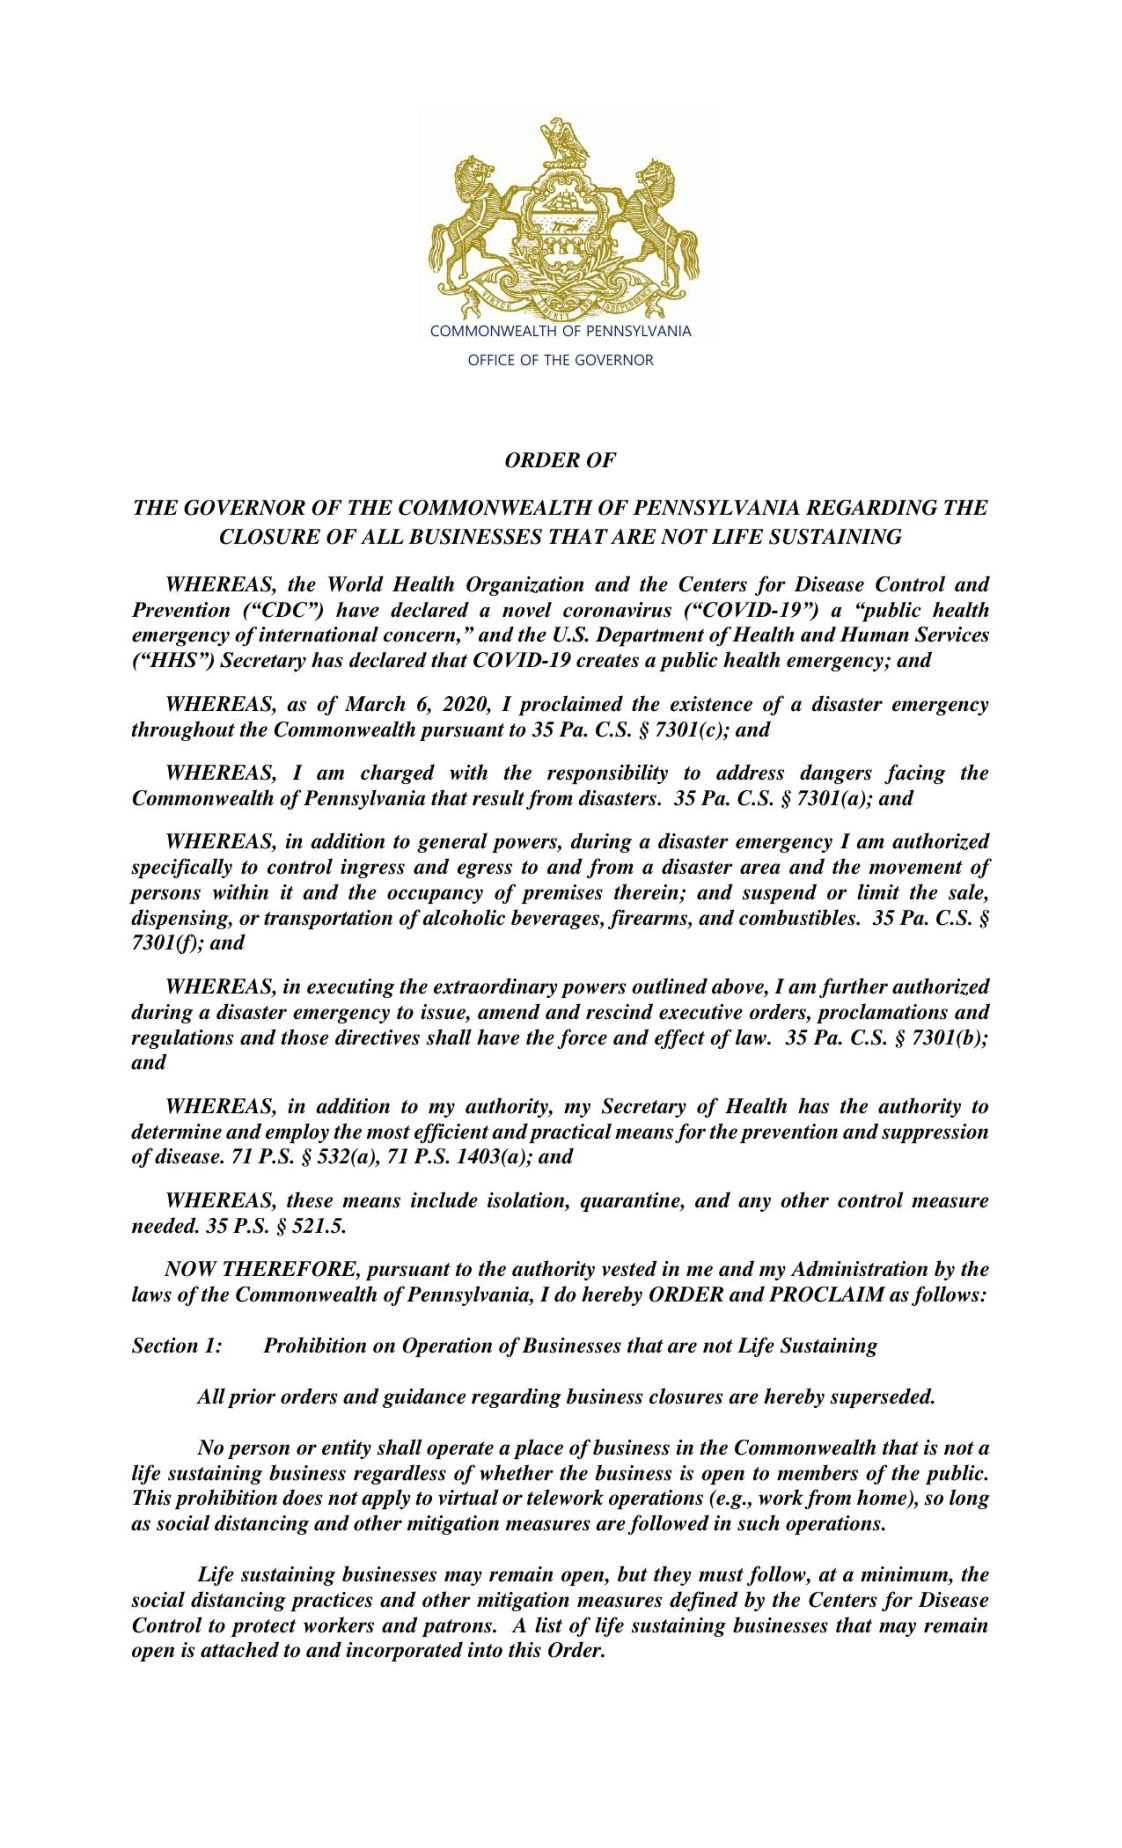 Governor's Closing Order, March 19 (PDF)